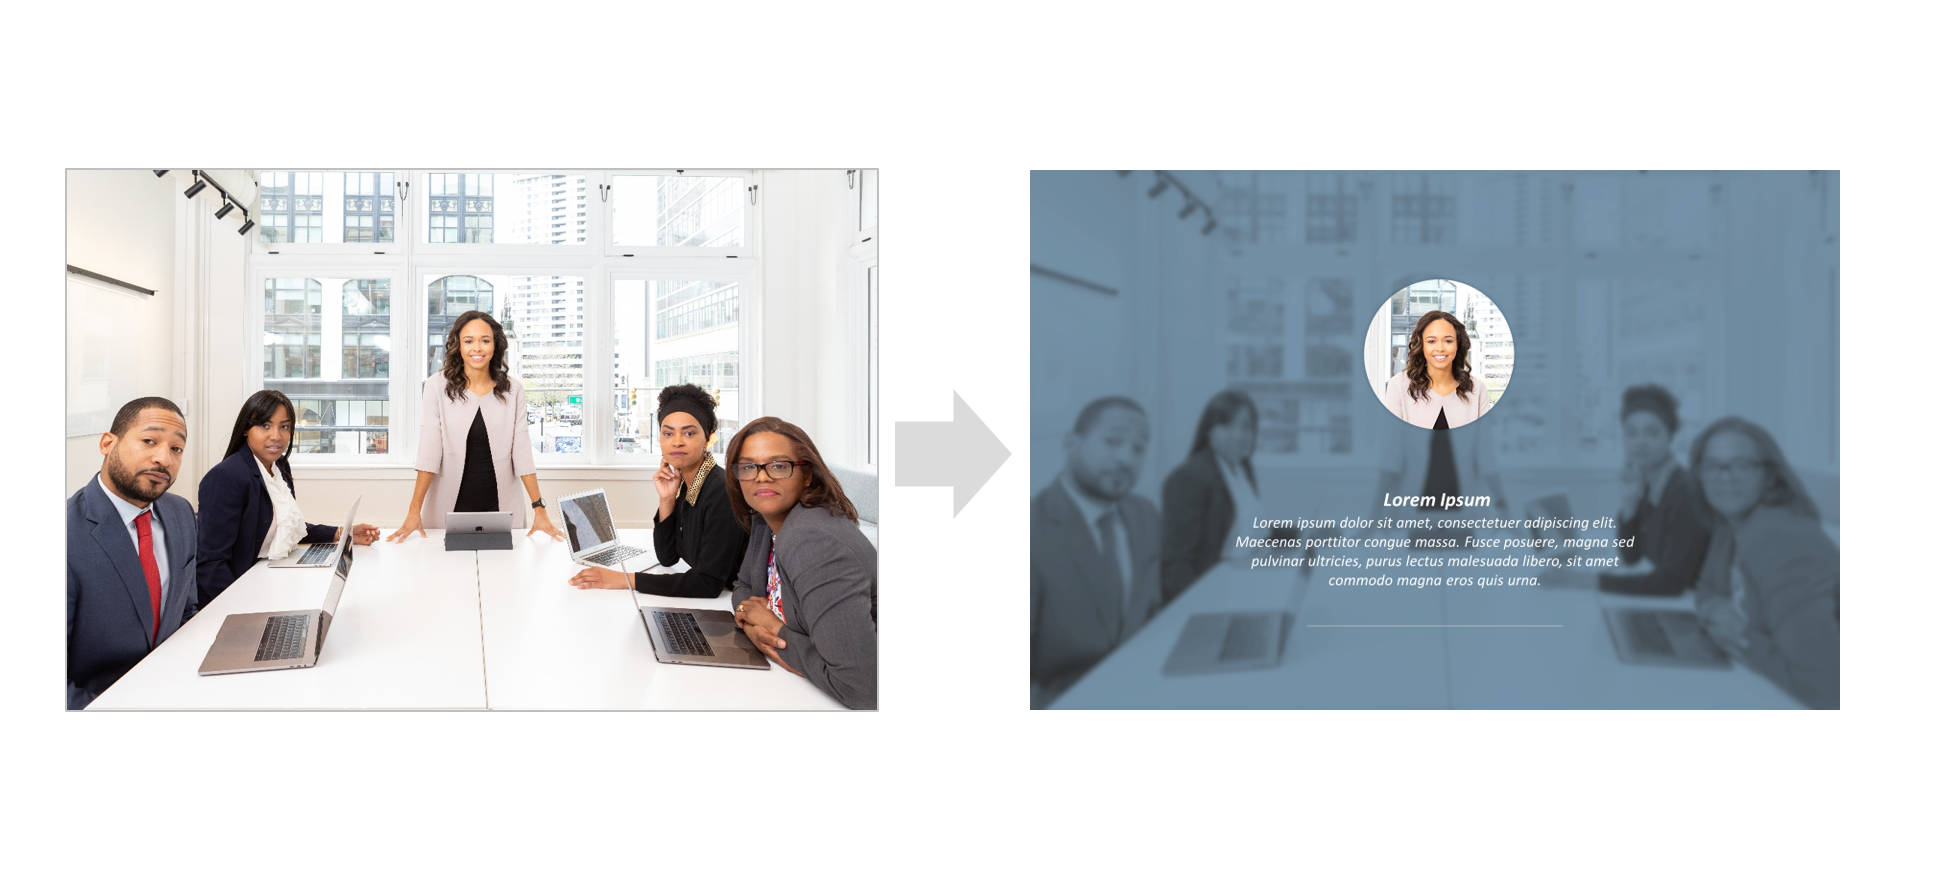 How To Highlight Part Of An Image Using Focus Effect In PowerPoint : Step-By-Step Tutorial